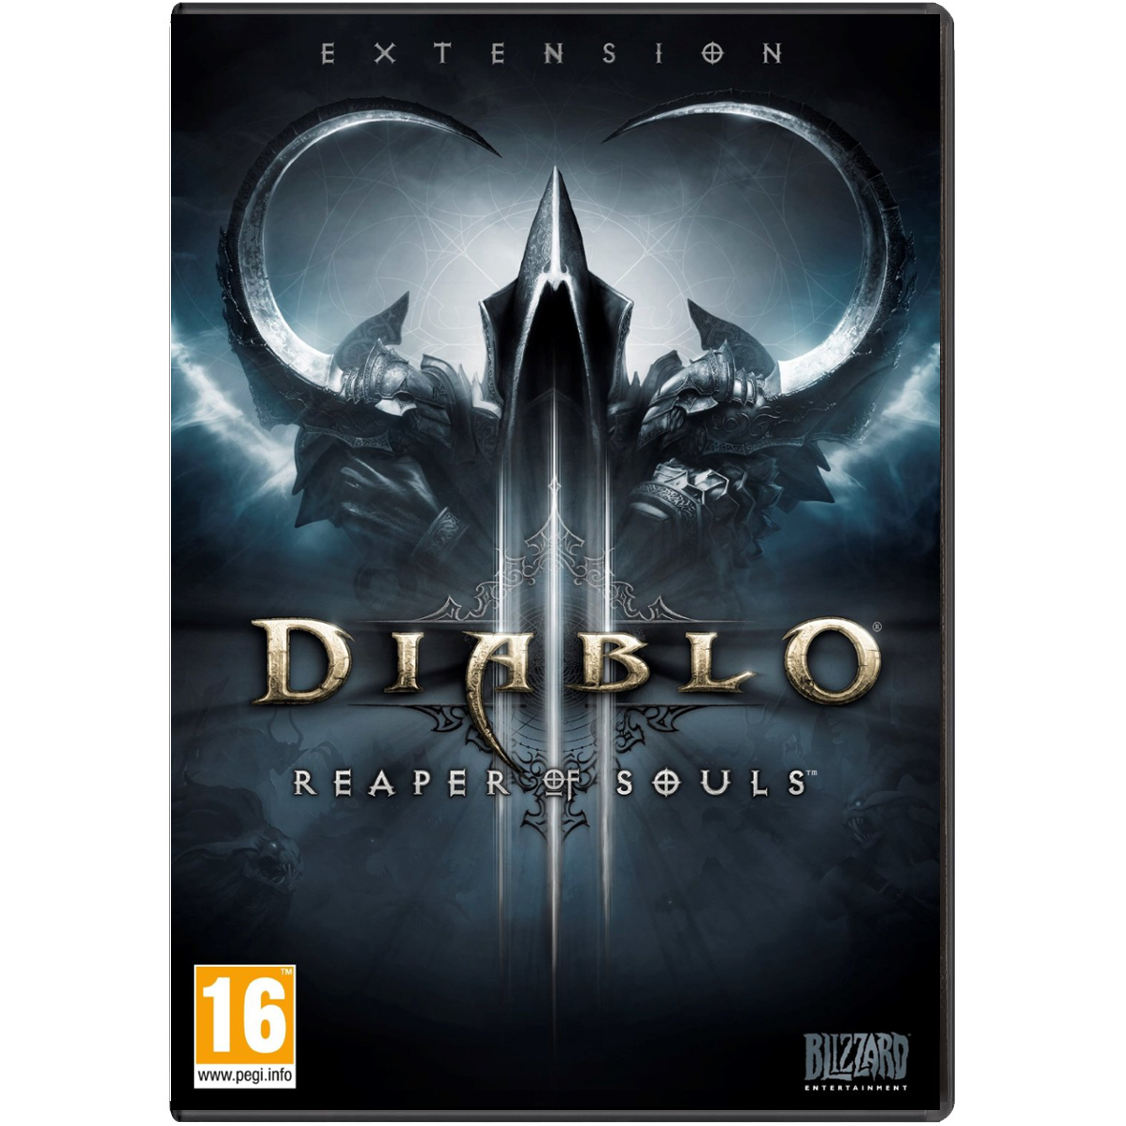 Jeux PC Diablo III : Reaper of Souls (PC/MAC) Diablo III : Reaper of Souls (PC/MAC)